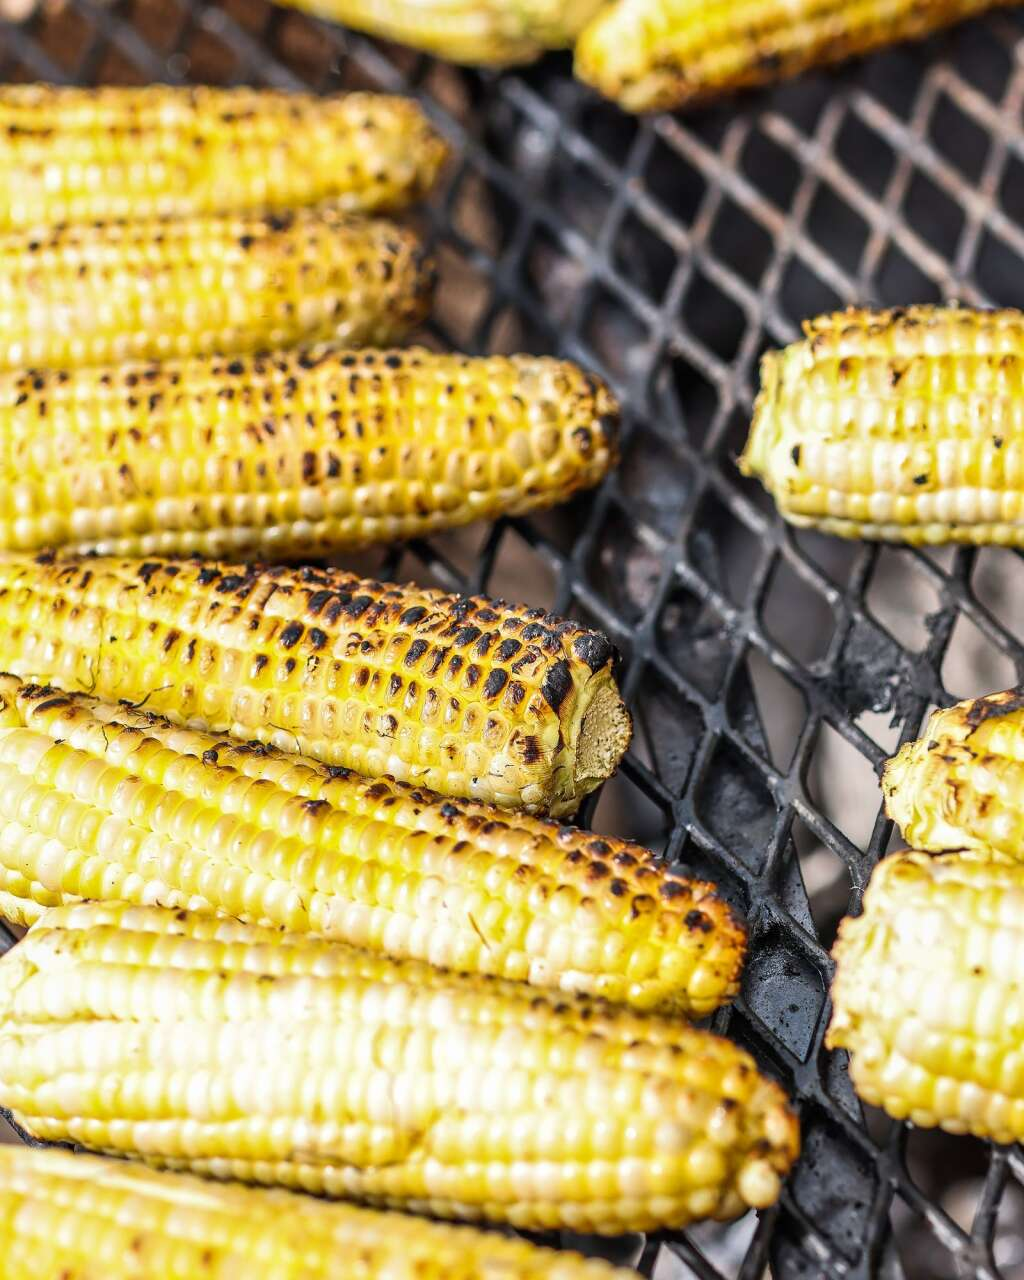 Corn is grilled during Heritage Fire on Saturday, July 31, 2021, in Snowmass Base Village. Photo by Austin Colbert/The Aspen Times.